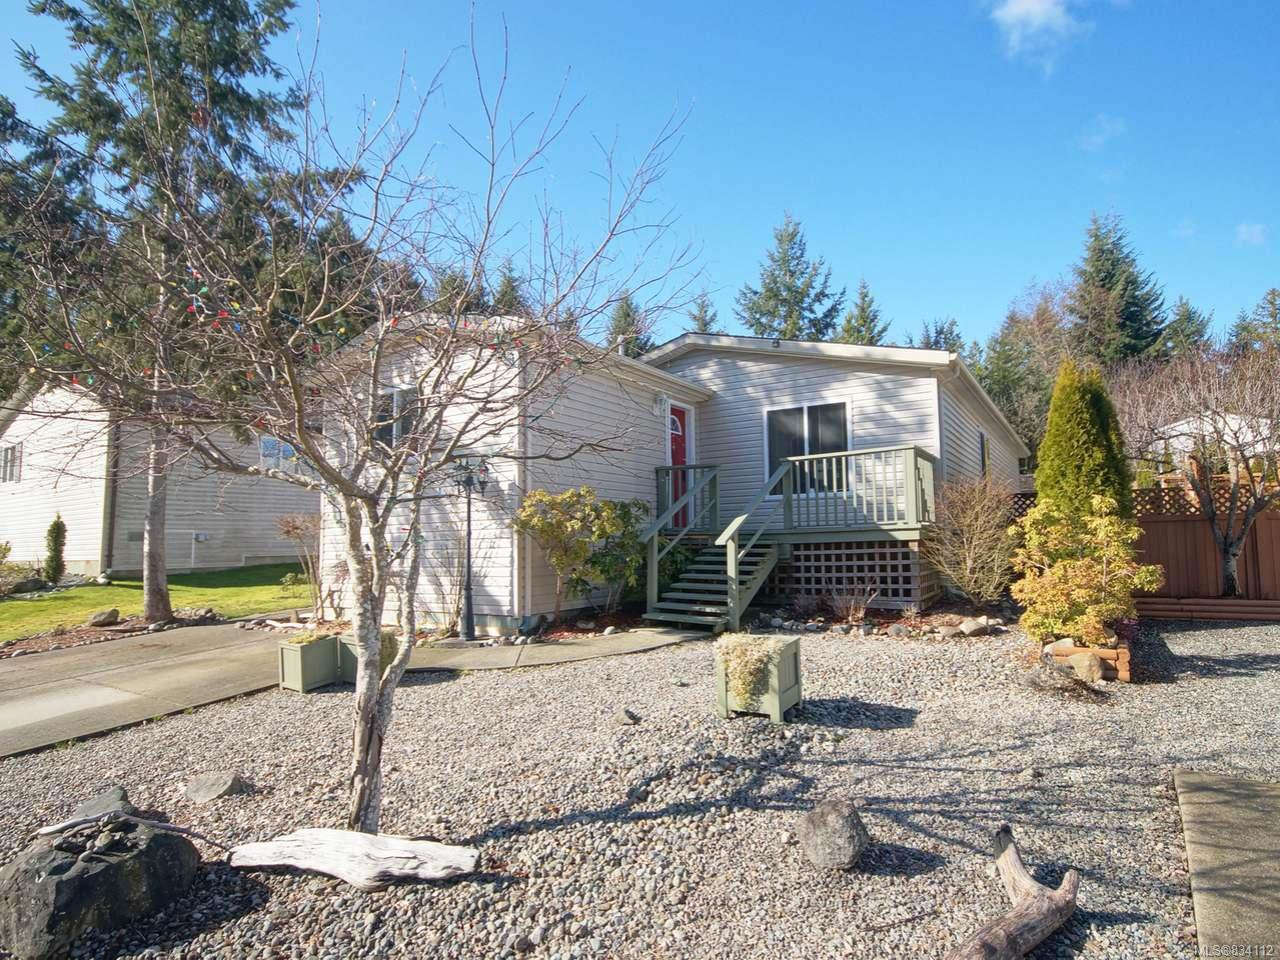 Main Photo: 110 1391 PRICE ROAD in PARKSVILLE: PQ Errington/Coombs/Hilliers Manufactured Home for sale (Parksville/Qualicum)  : MLS®# 834112